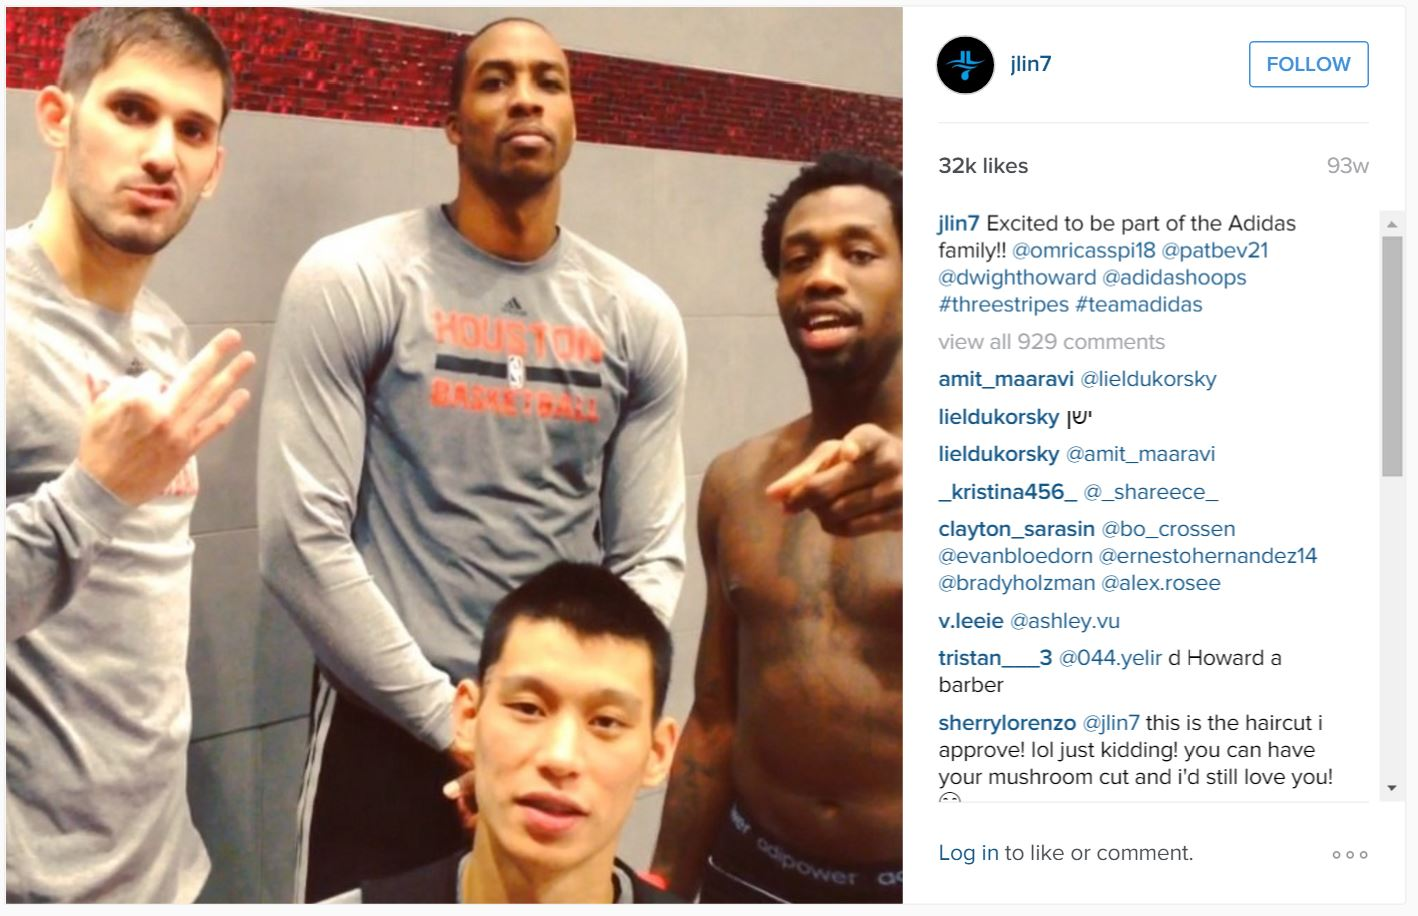 Jeremy Lin joins adidas haircut special